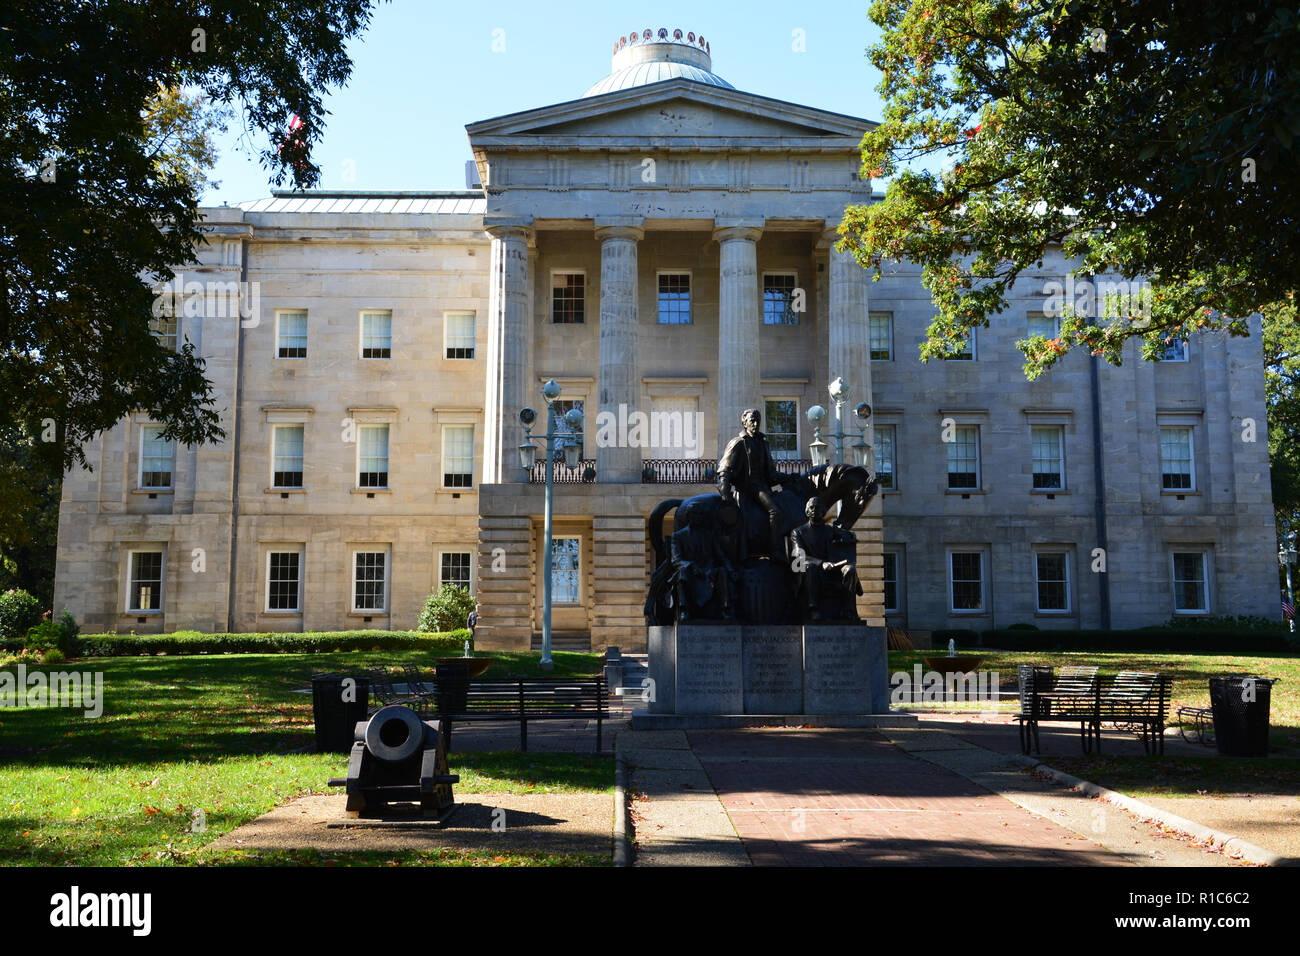 The Three Presidents Monument showing Presidents Johnson, Jackson and Polk outside the historic Capitol building in Raleigh North Carolina. - Stock Image